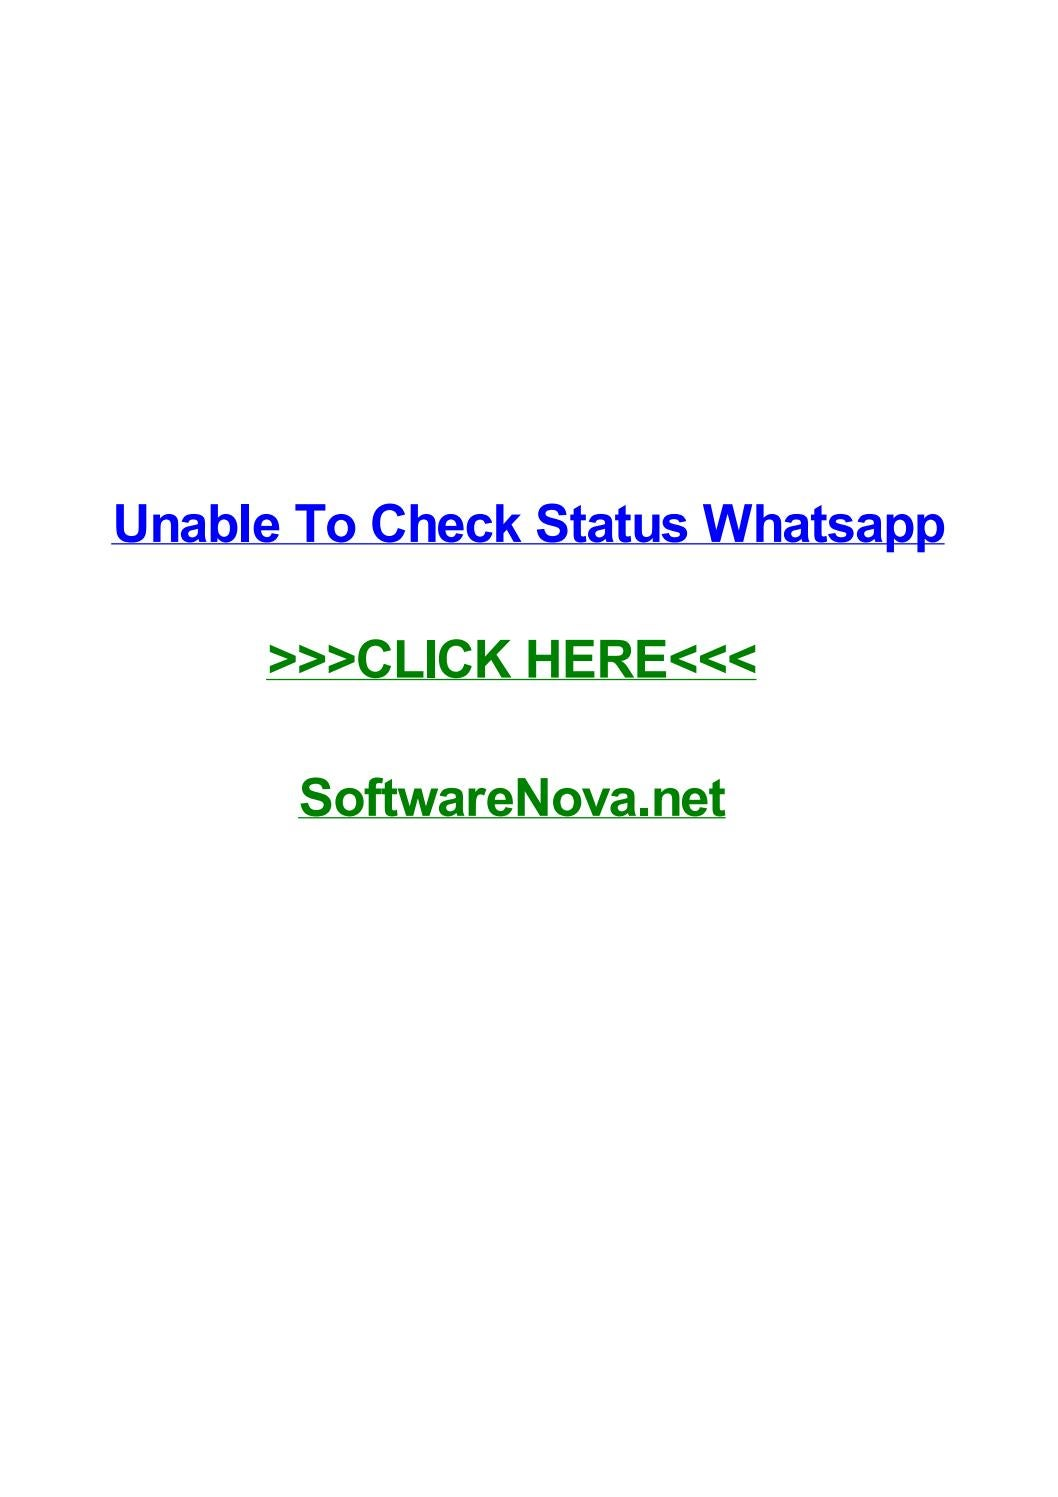 Unable To Check Status Whatsapp By Jillxirge Issuu